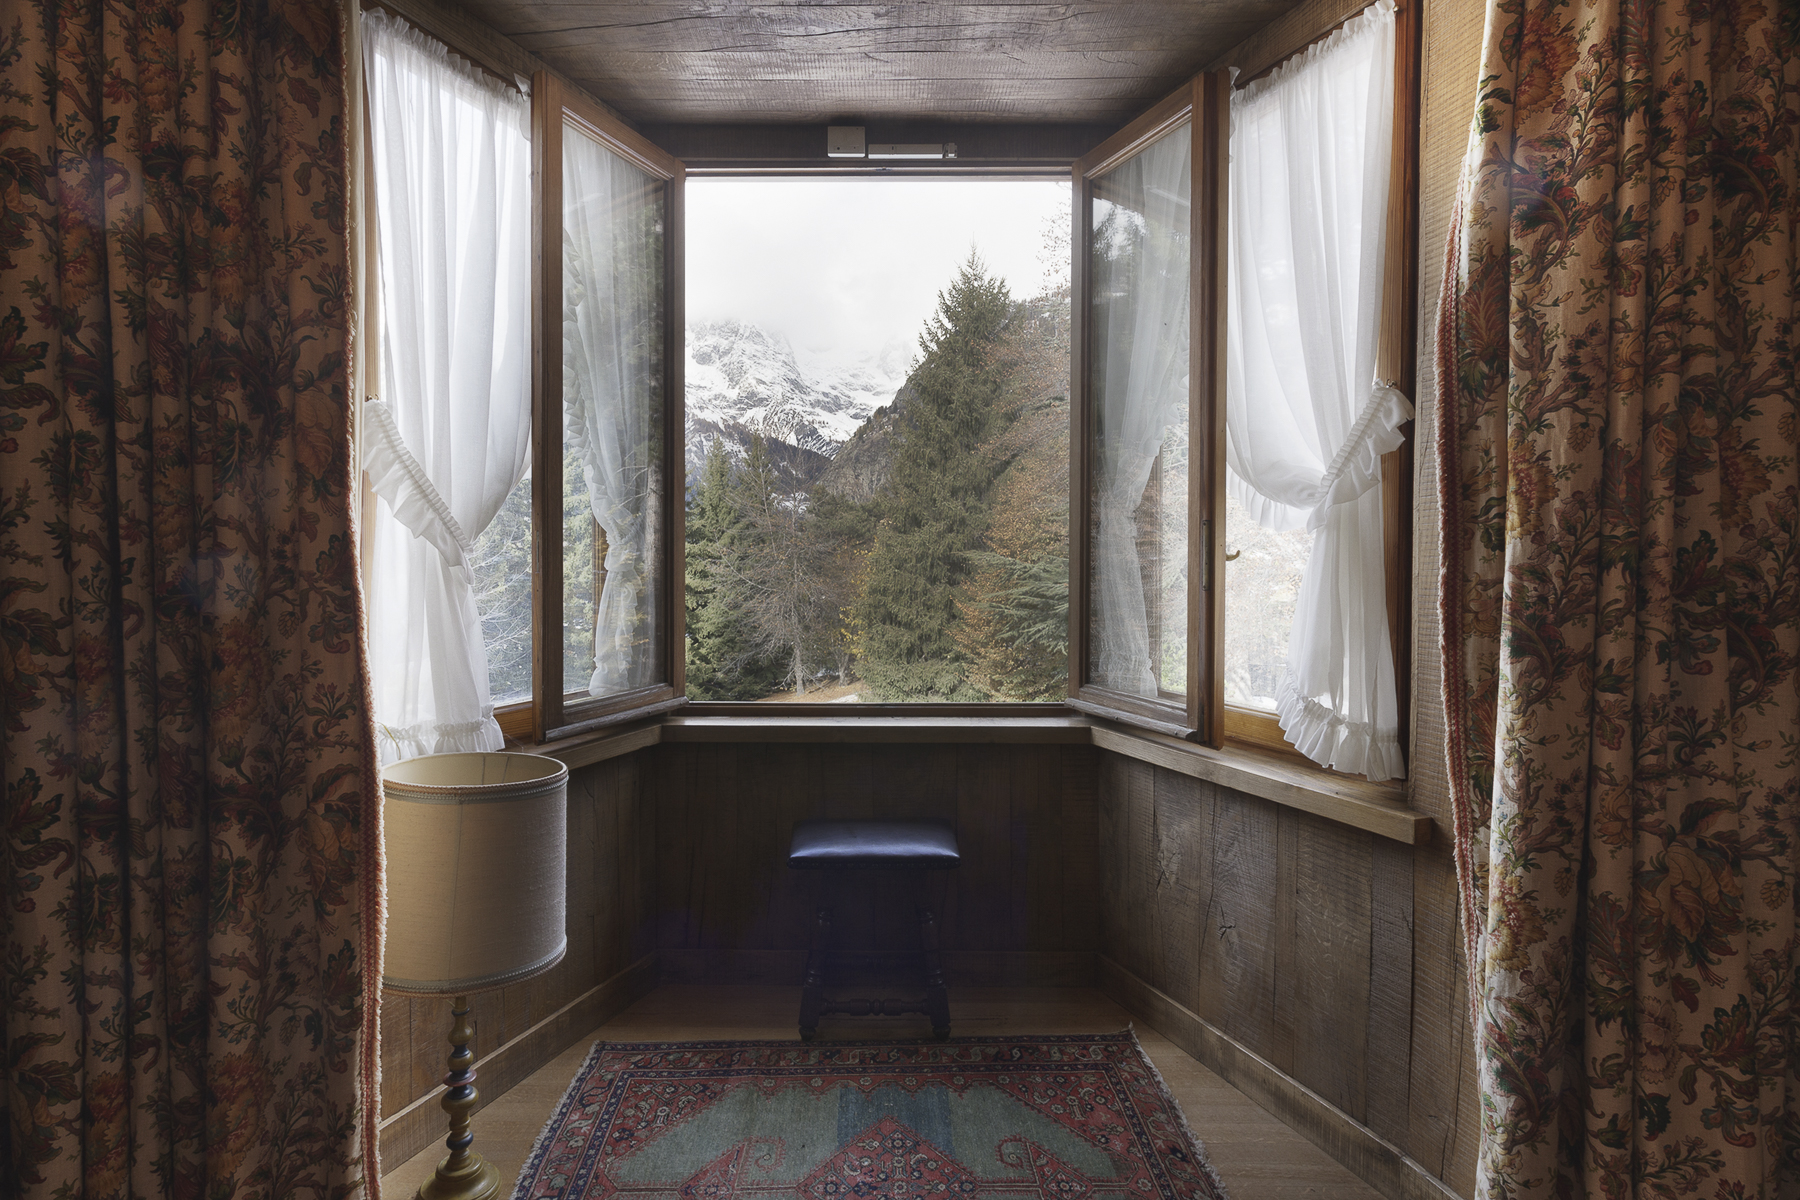 Additional photo for property listing at Old mansion including more villas in Courmayeur Via Donzelli Courmayeur, Aosta 11013 Italia